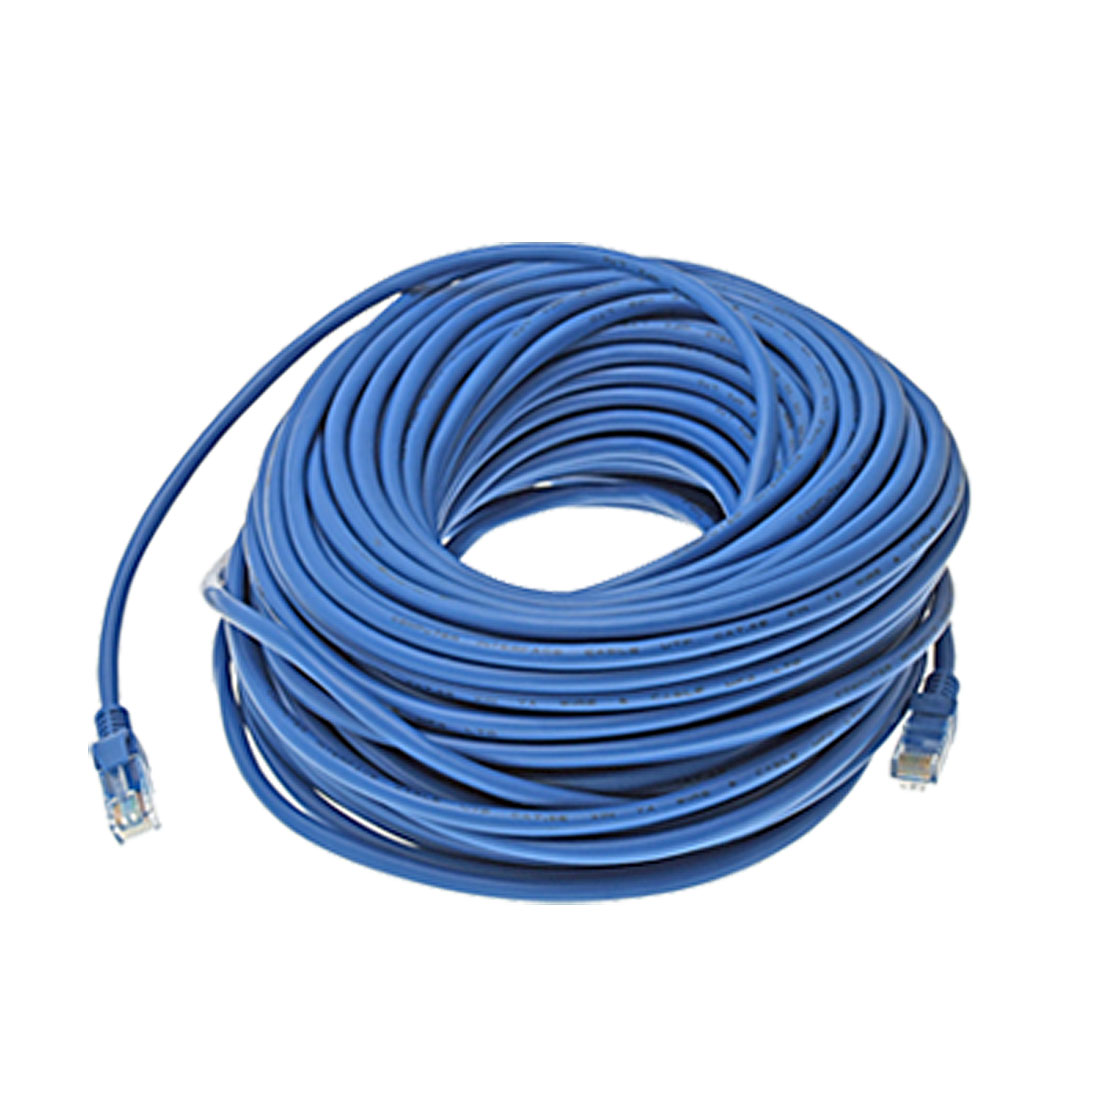 82FT 82 FT RJ45 CAT5 CAT 5E CAT5E Ethernet LAN Network Cable Blue